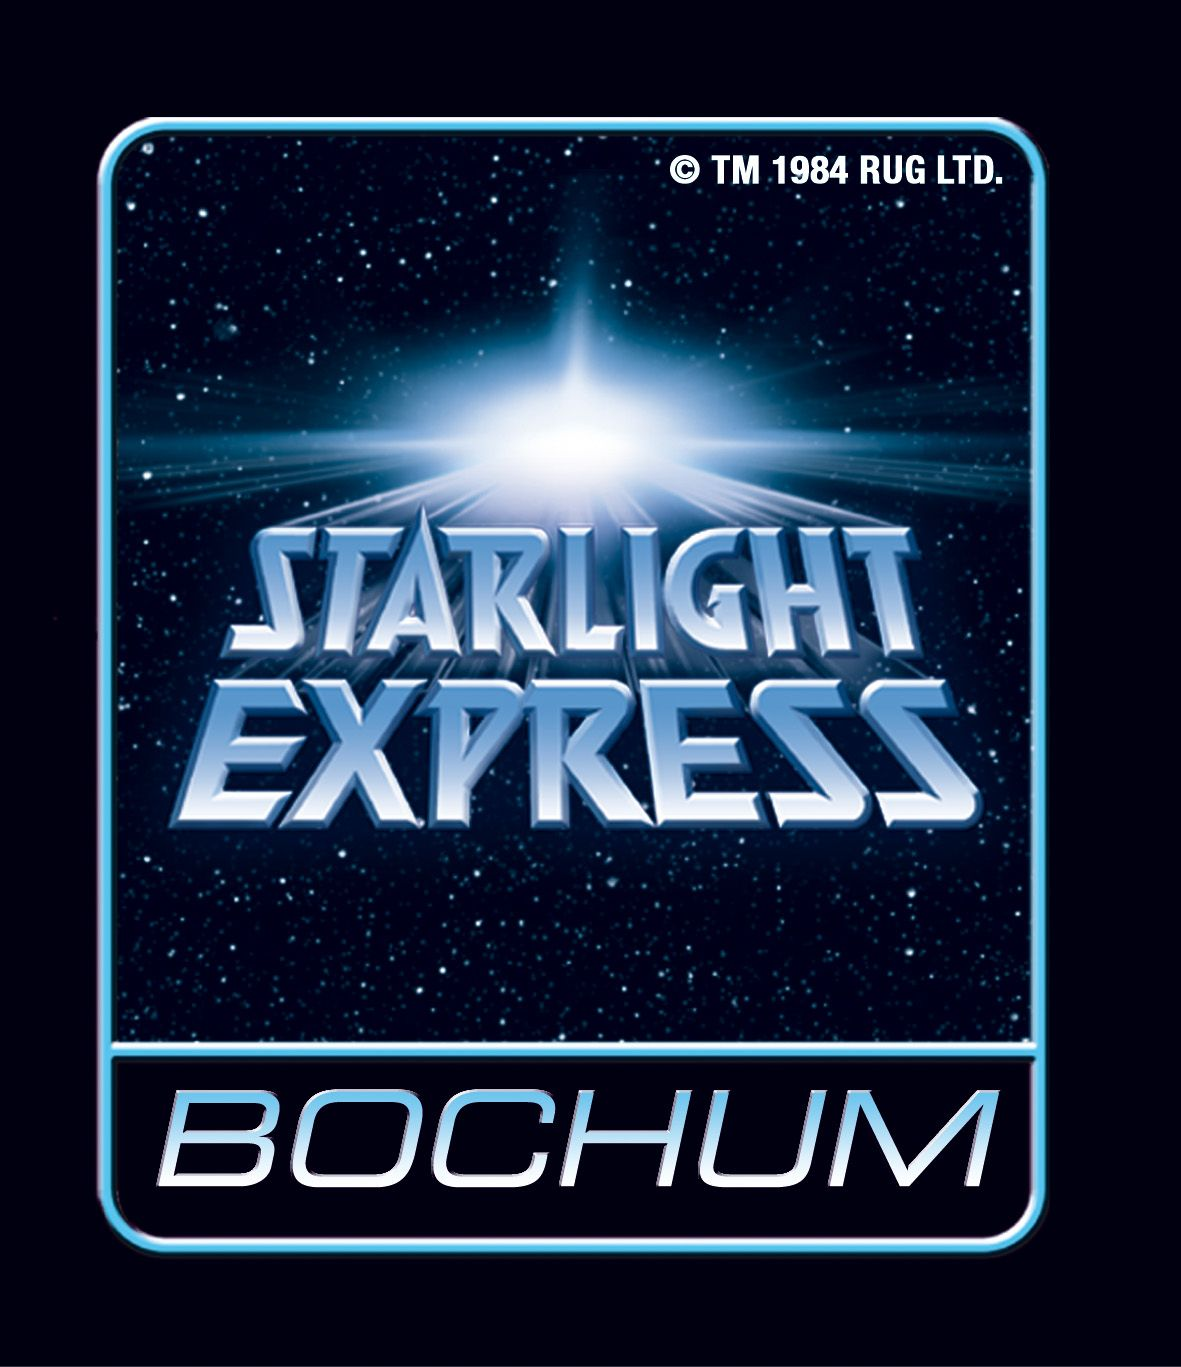 Starlight Express 360 Grad Sessel Beste Plätze Starlight Express Bild Im Theater Zu Starlight